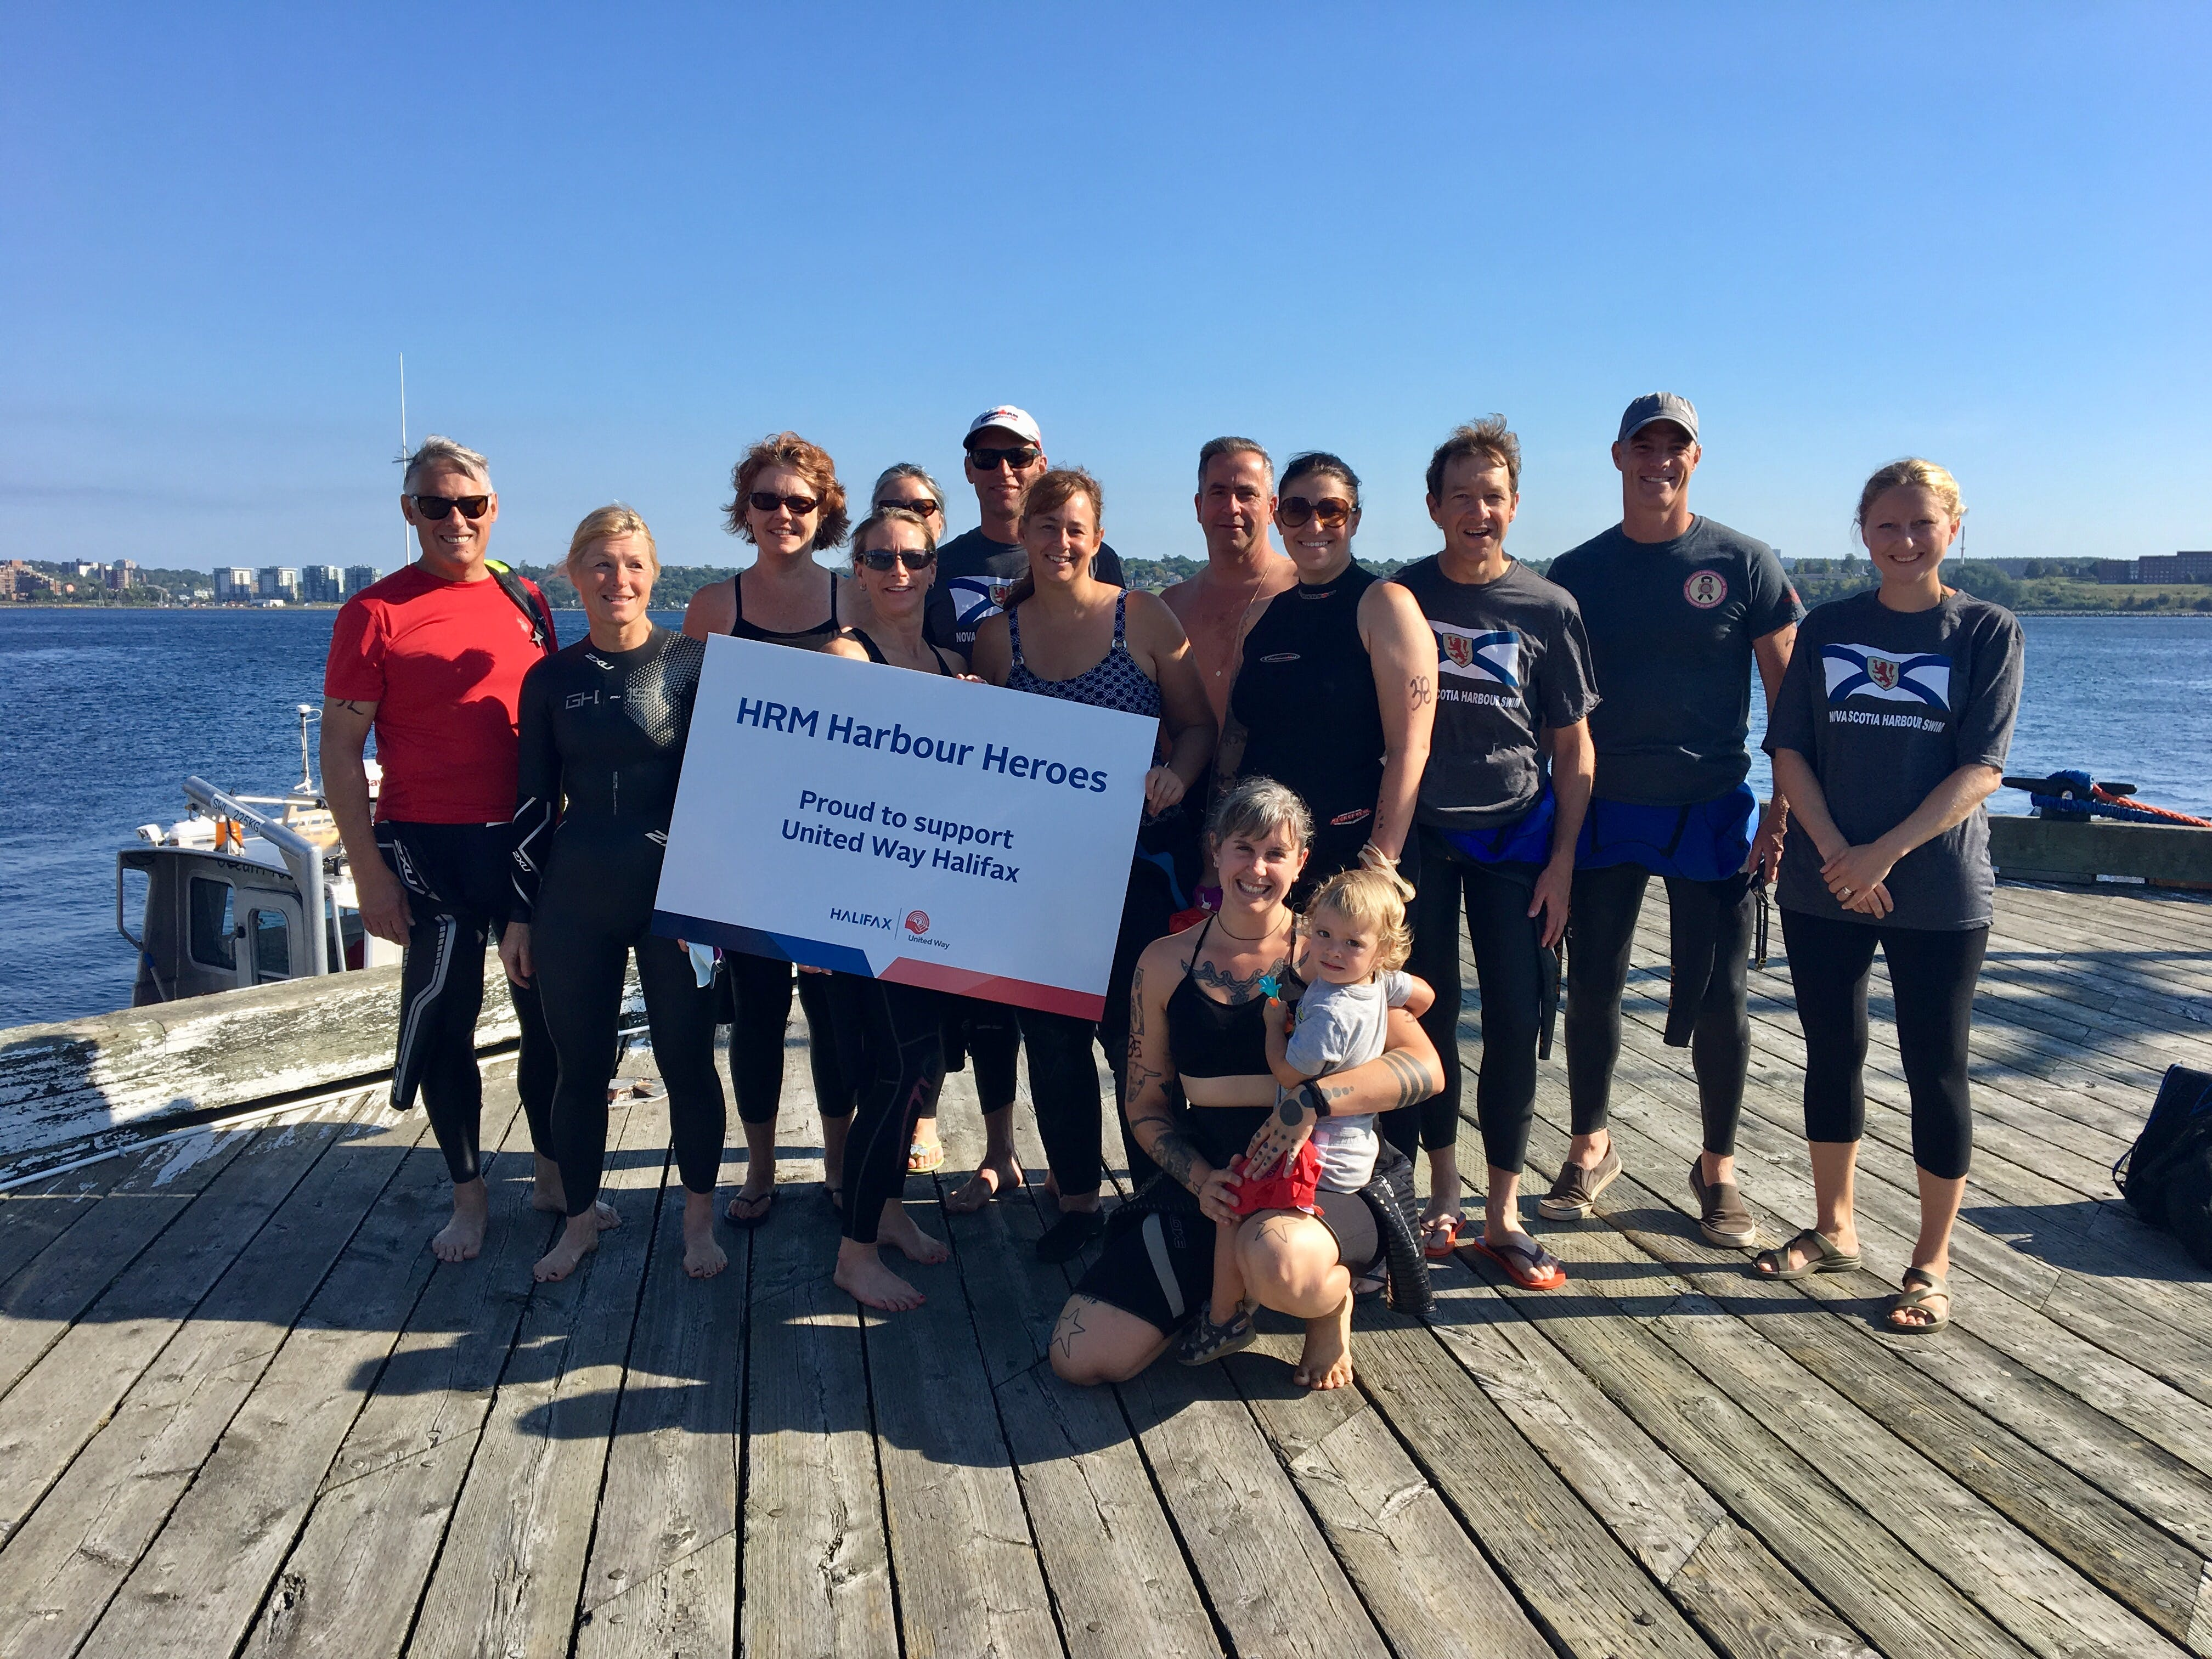 HRM Harbour Heroes gearing up to take the plunge at United Way Halifax's Harbour Swim, September 2018